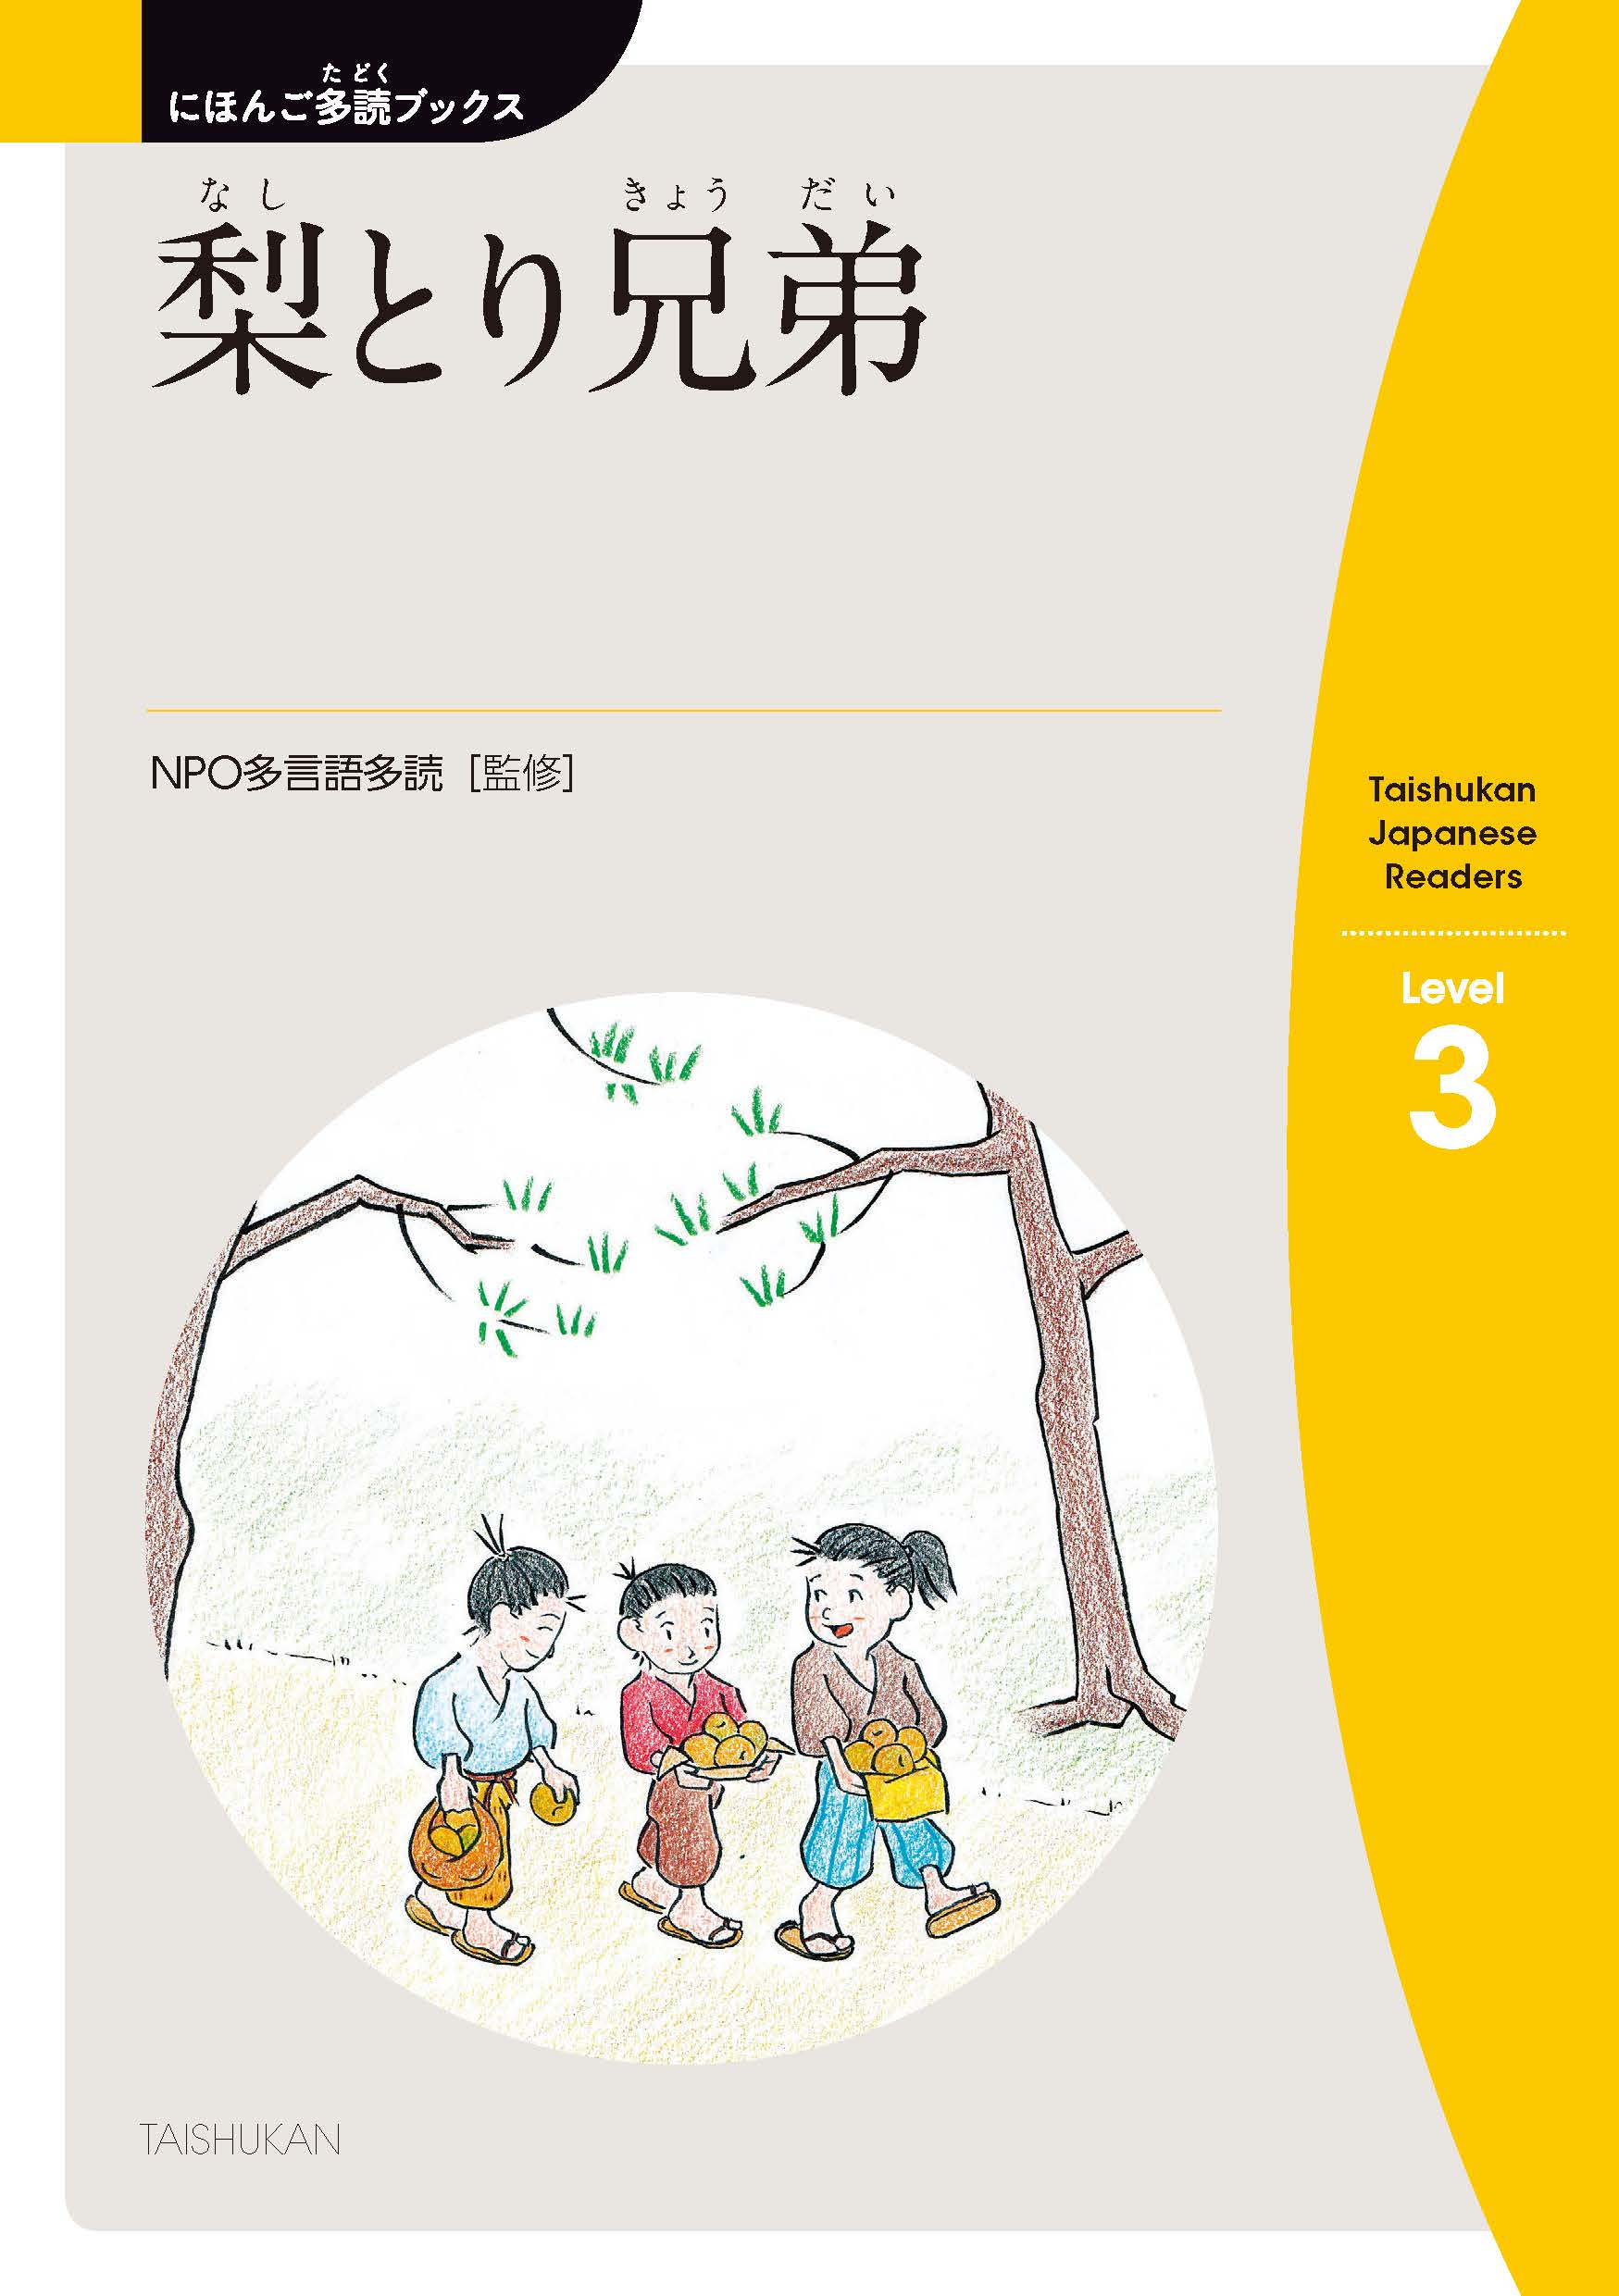 vol. 3-2 梨(なし)とり兄弟(きょうだい) Three Brothers Who Went Searching for Pears